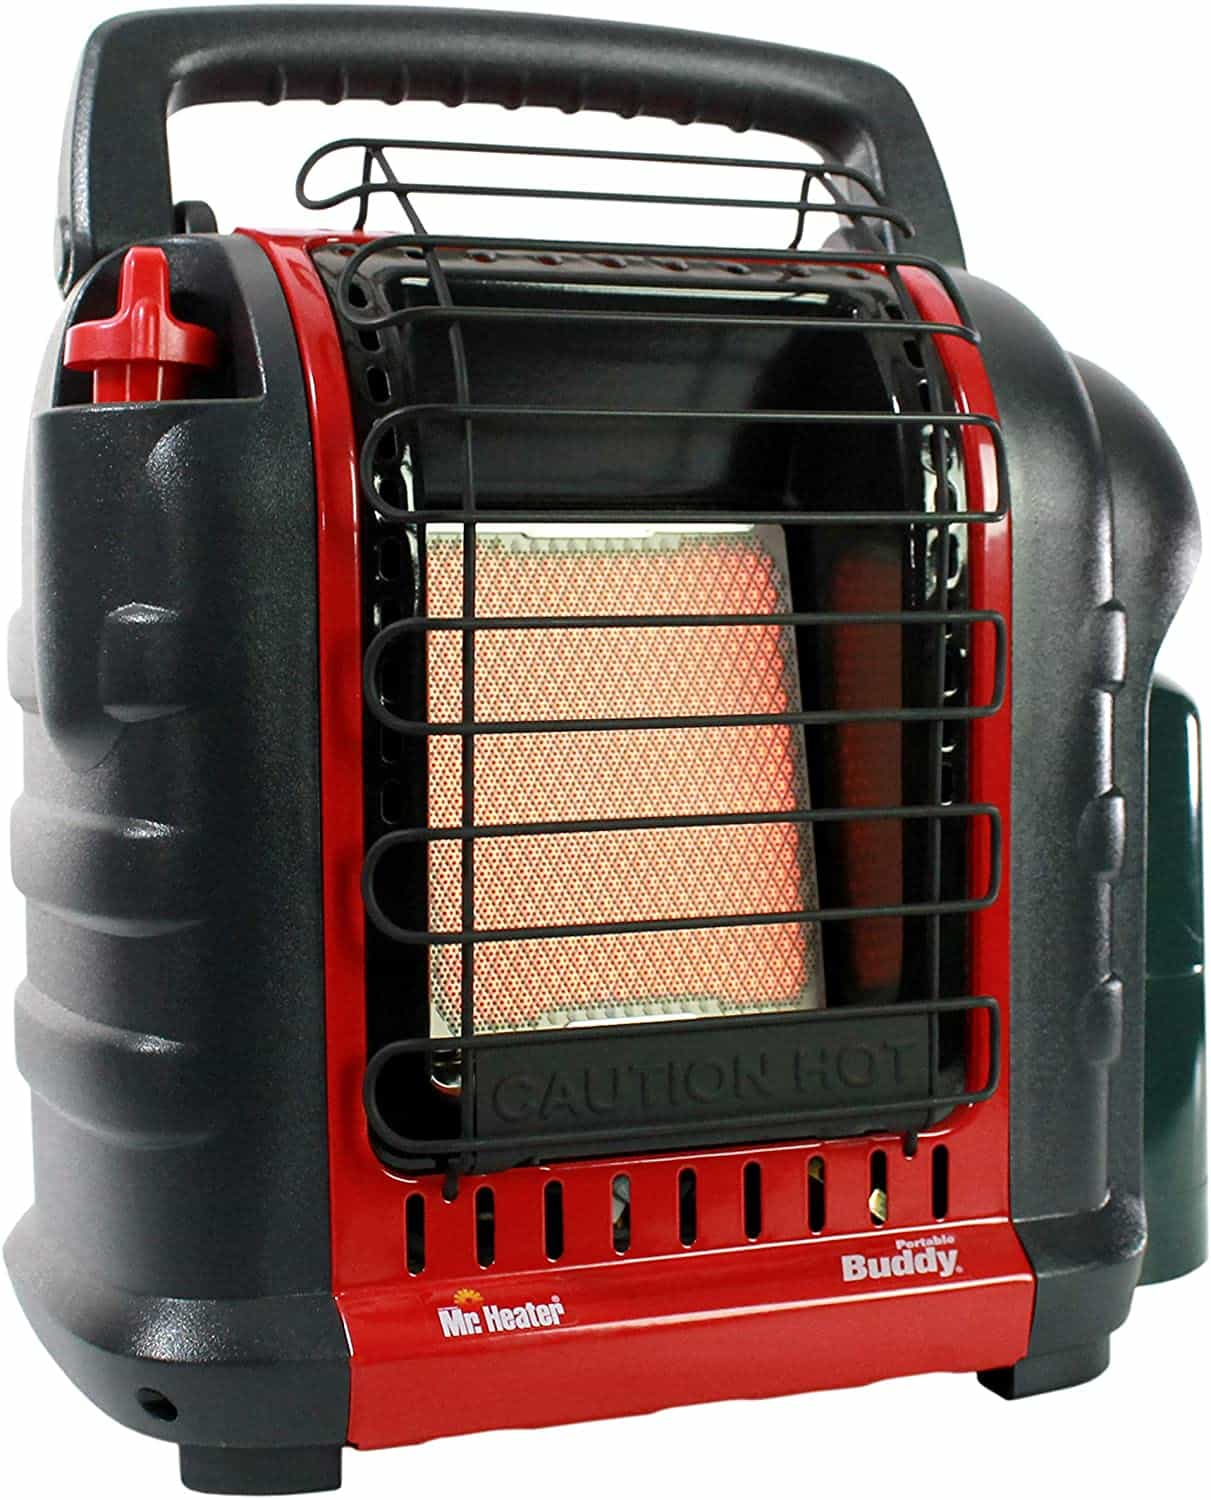 Mr. Heater MH9BX Buddy Indoor-Safe Portable Propane Radiant Heater